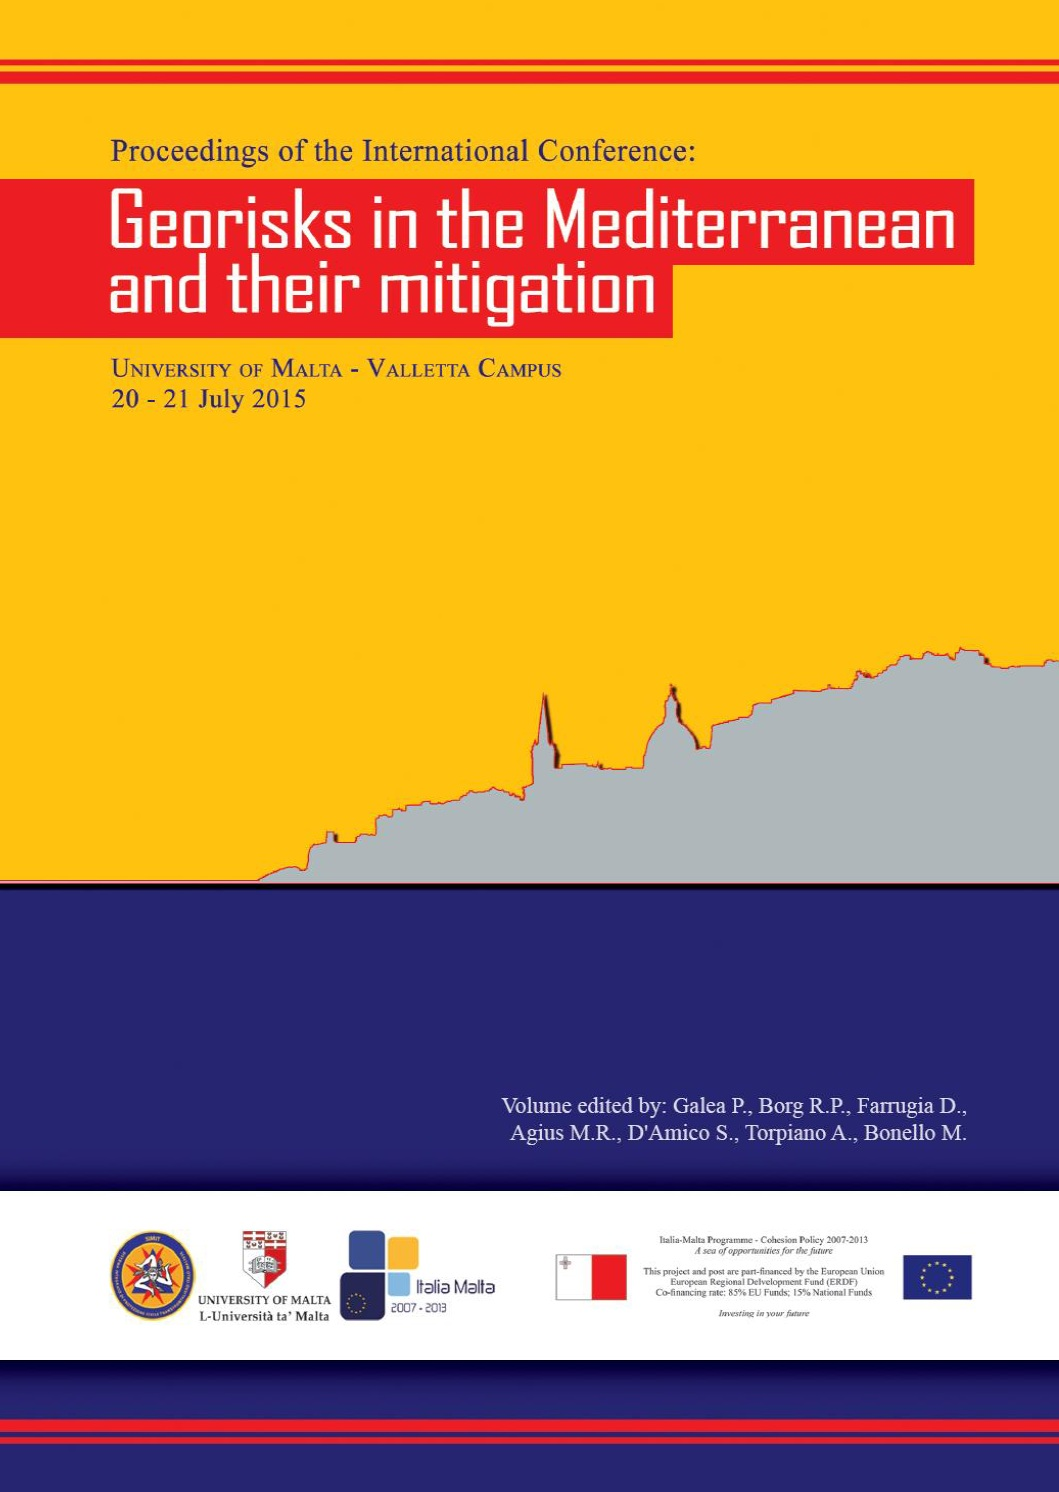 Proceedings of the International Conference: GEORISKS IN THE MEDITERRANEAN AND THEIR MITIGATION